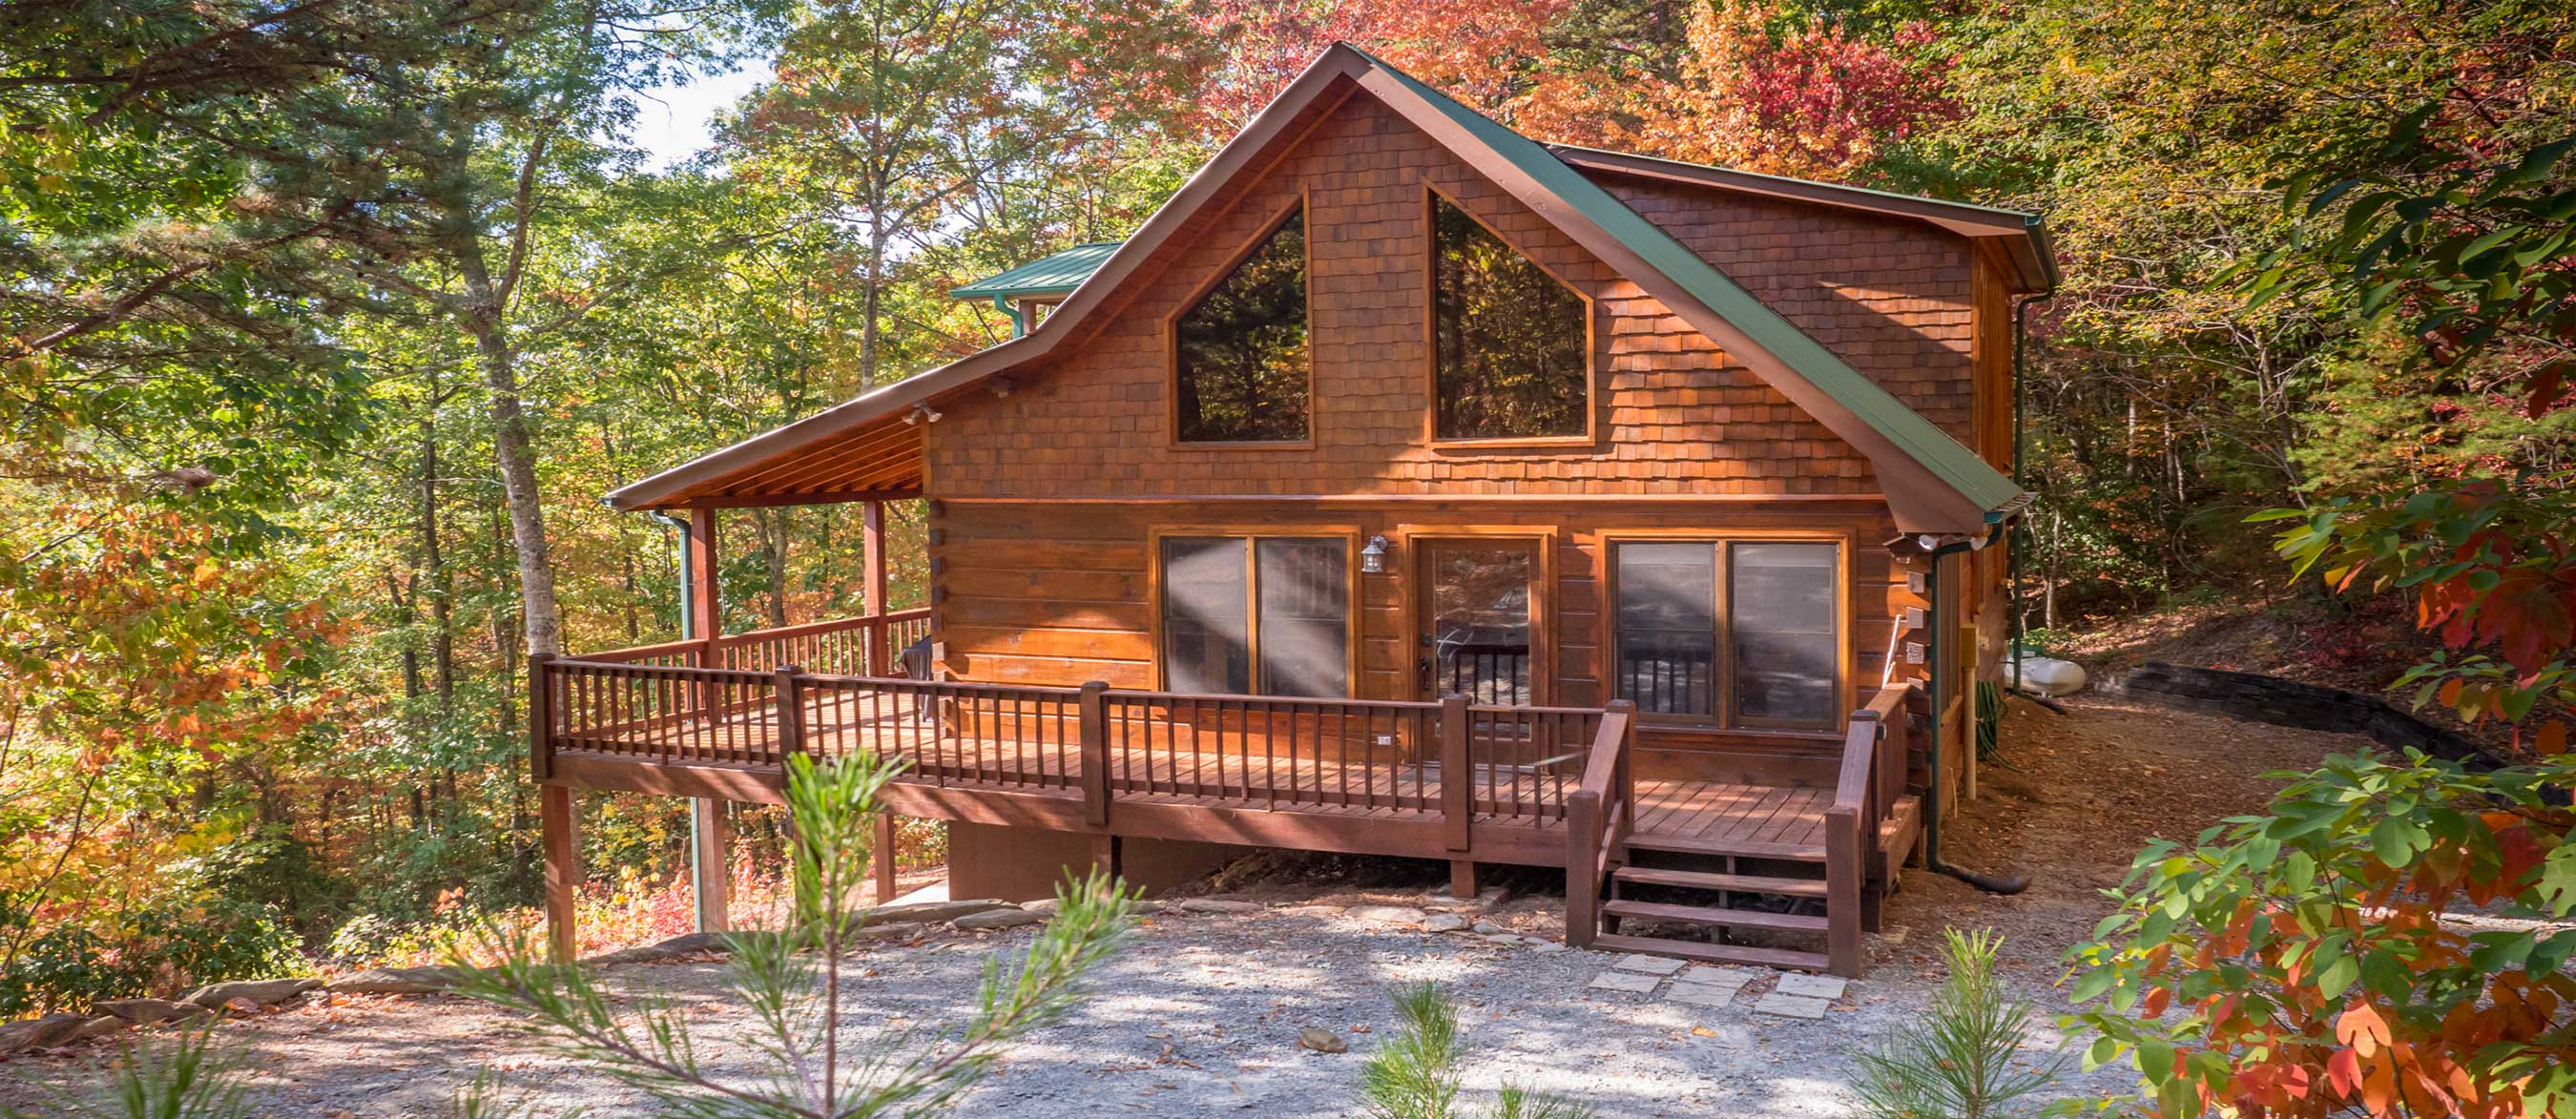 friendly in georgia ga cabin rentals cabins dog vacation innsbruck pet near rent for helen cheap